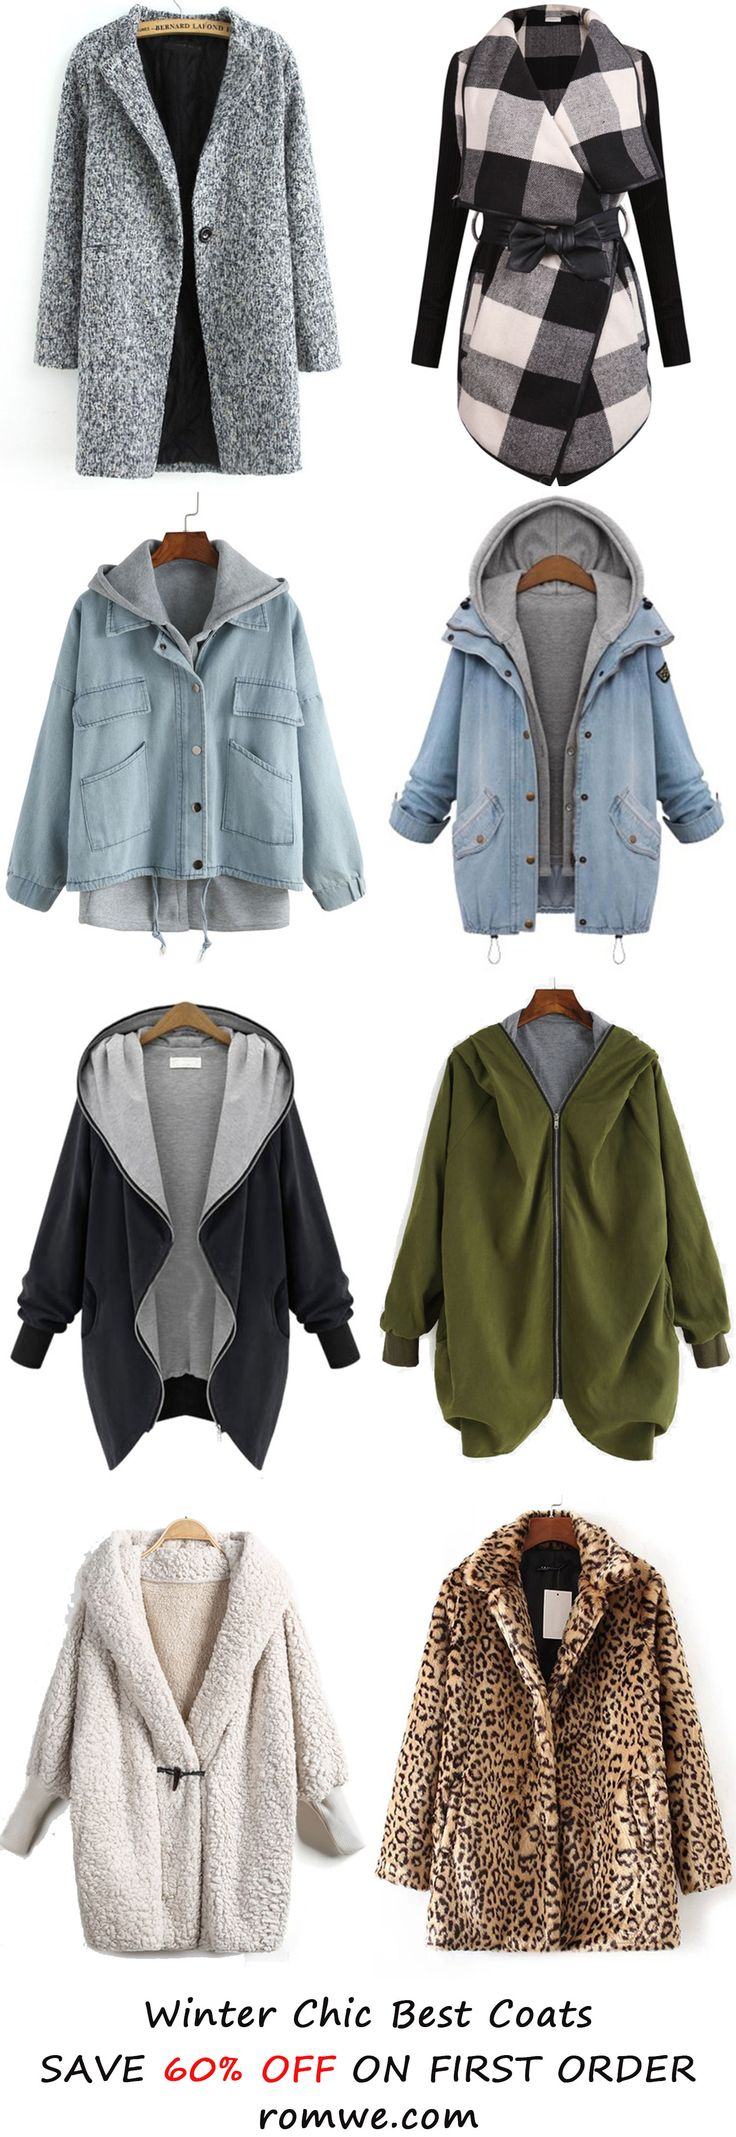 Fall & Winter Coats Collection from romwe.com